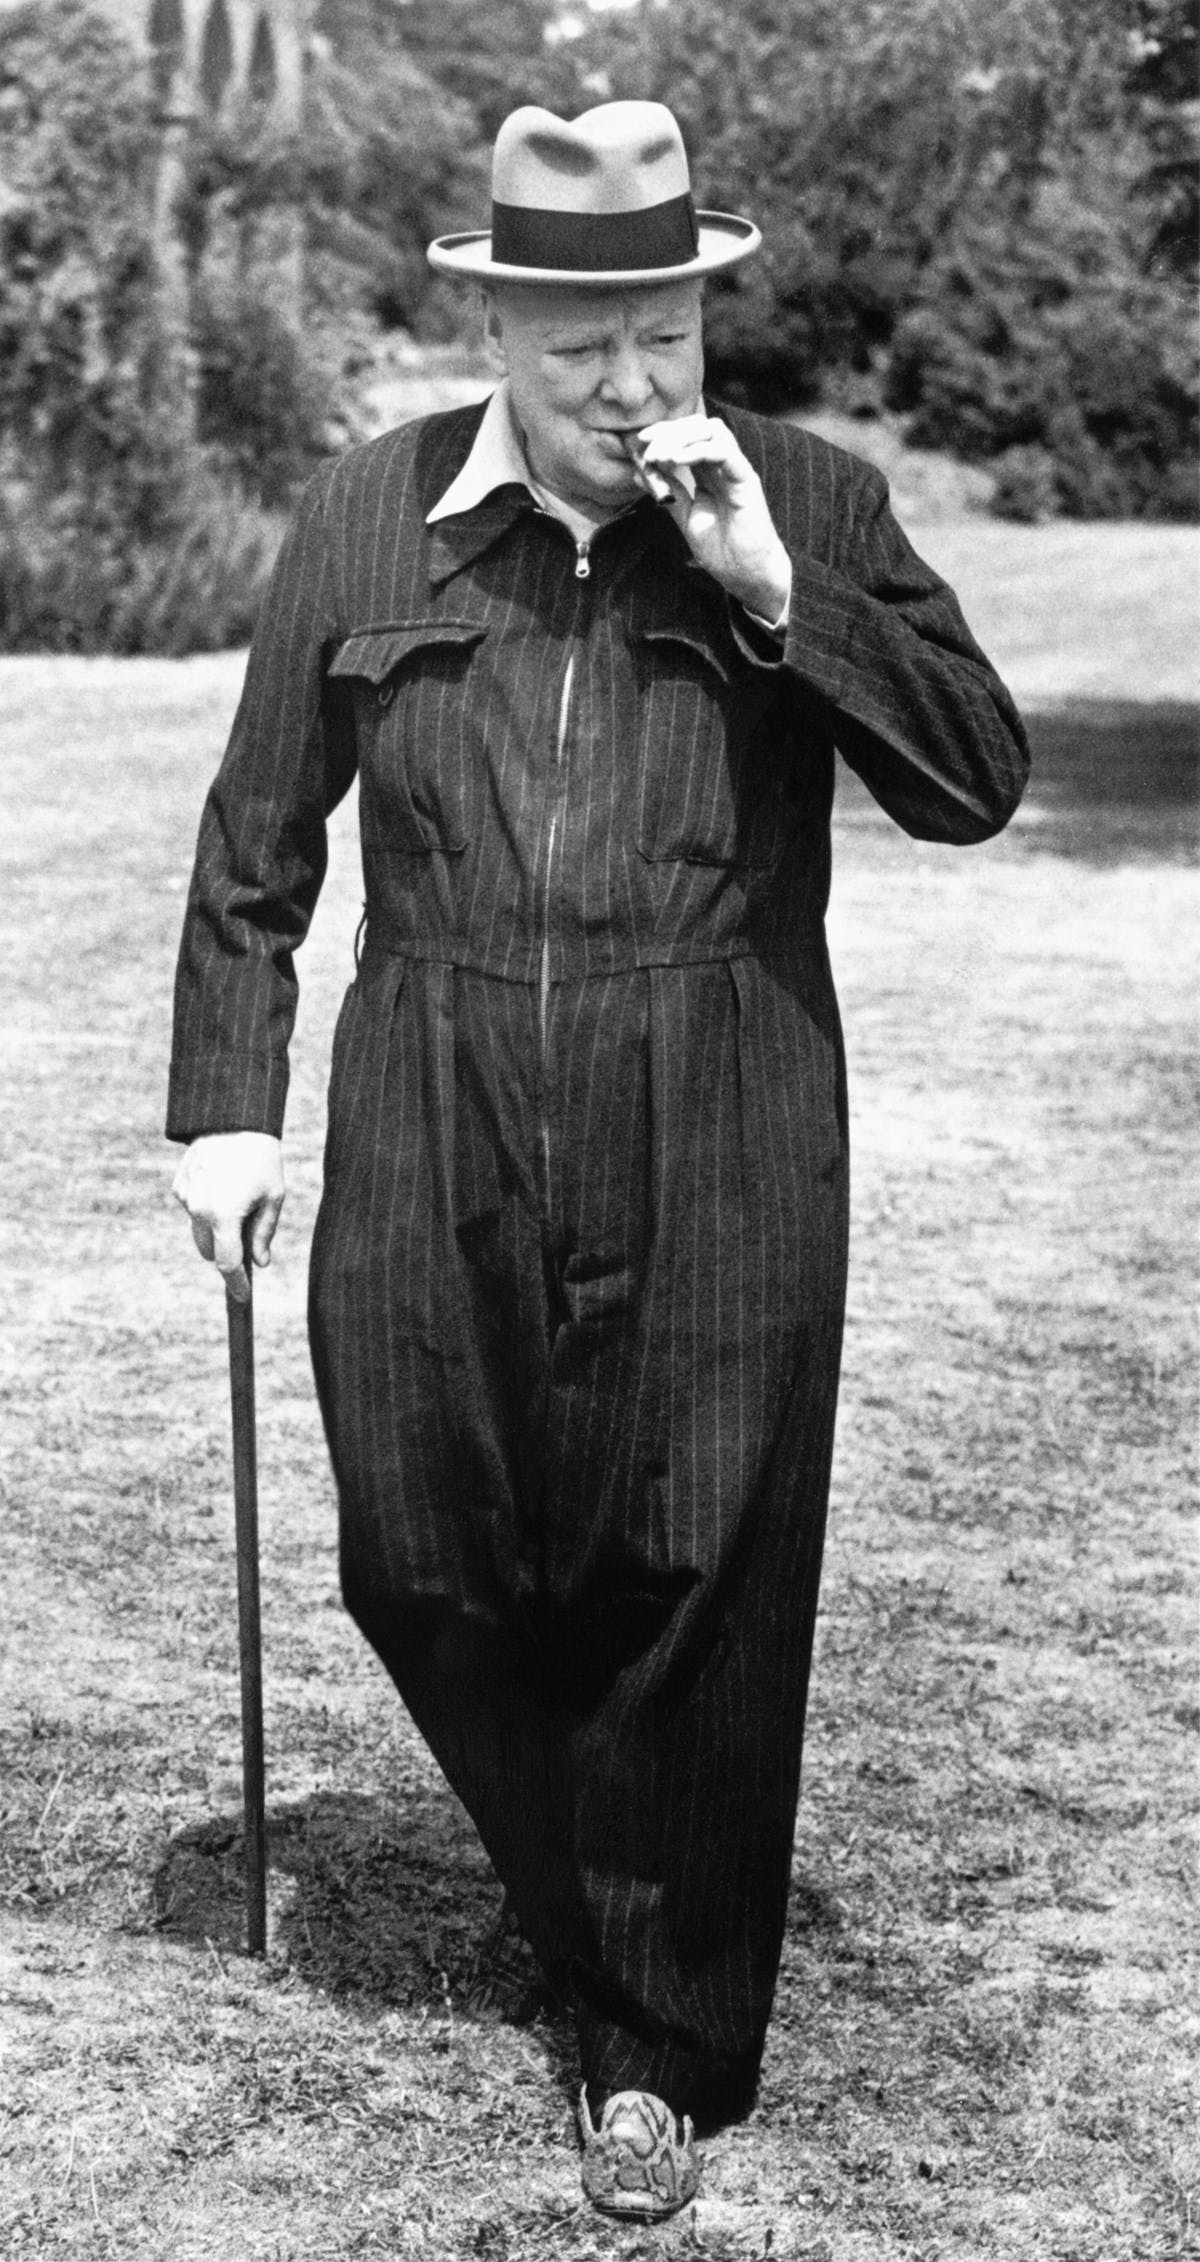 A black and white photograph of Winston Churchill. He is wearing a siren suit, and hat, and is leaning on a cane in his right hand, and is smoking a cigar held in his left.